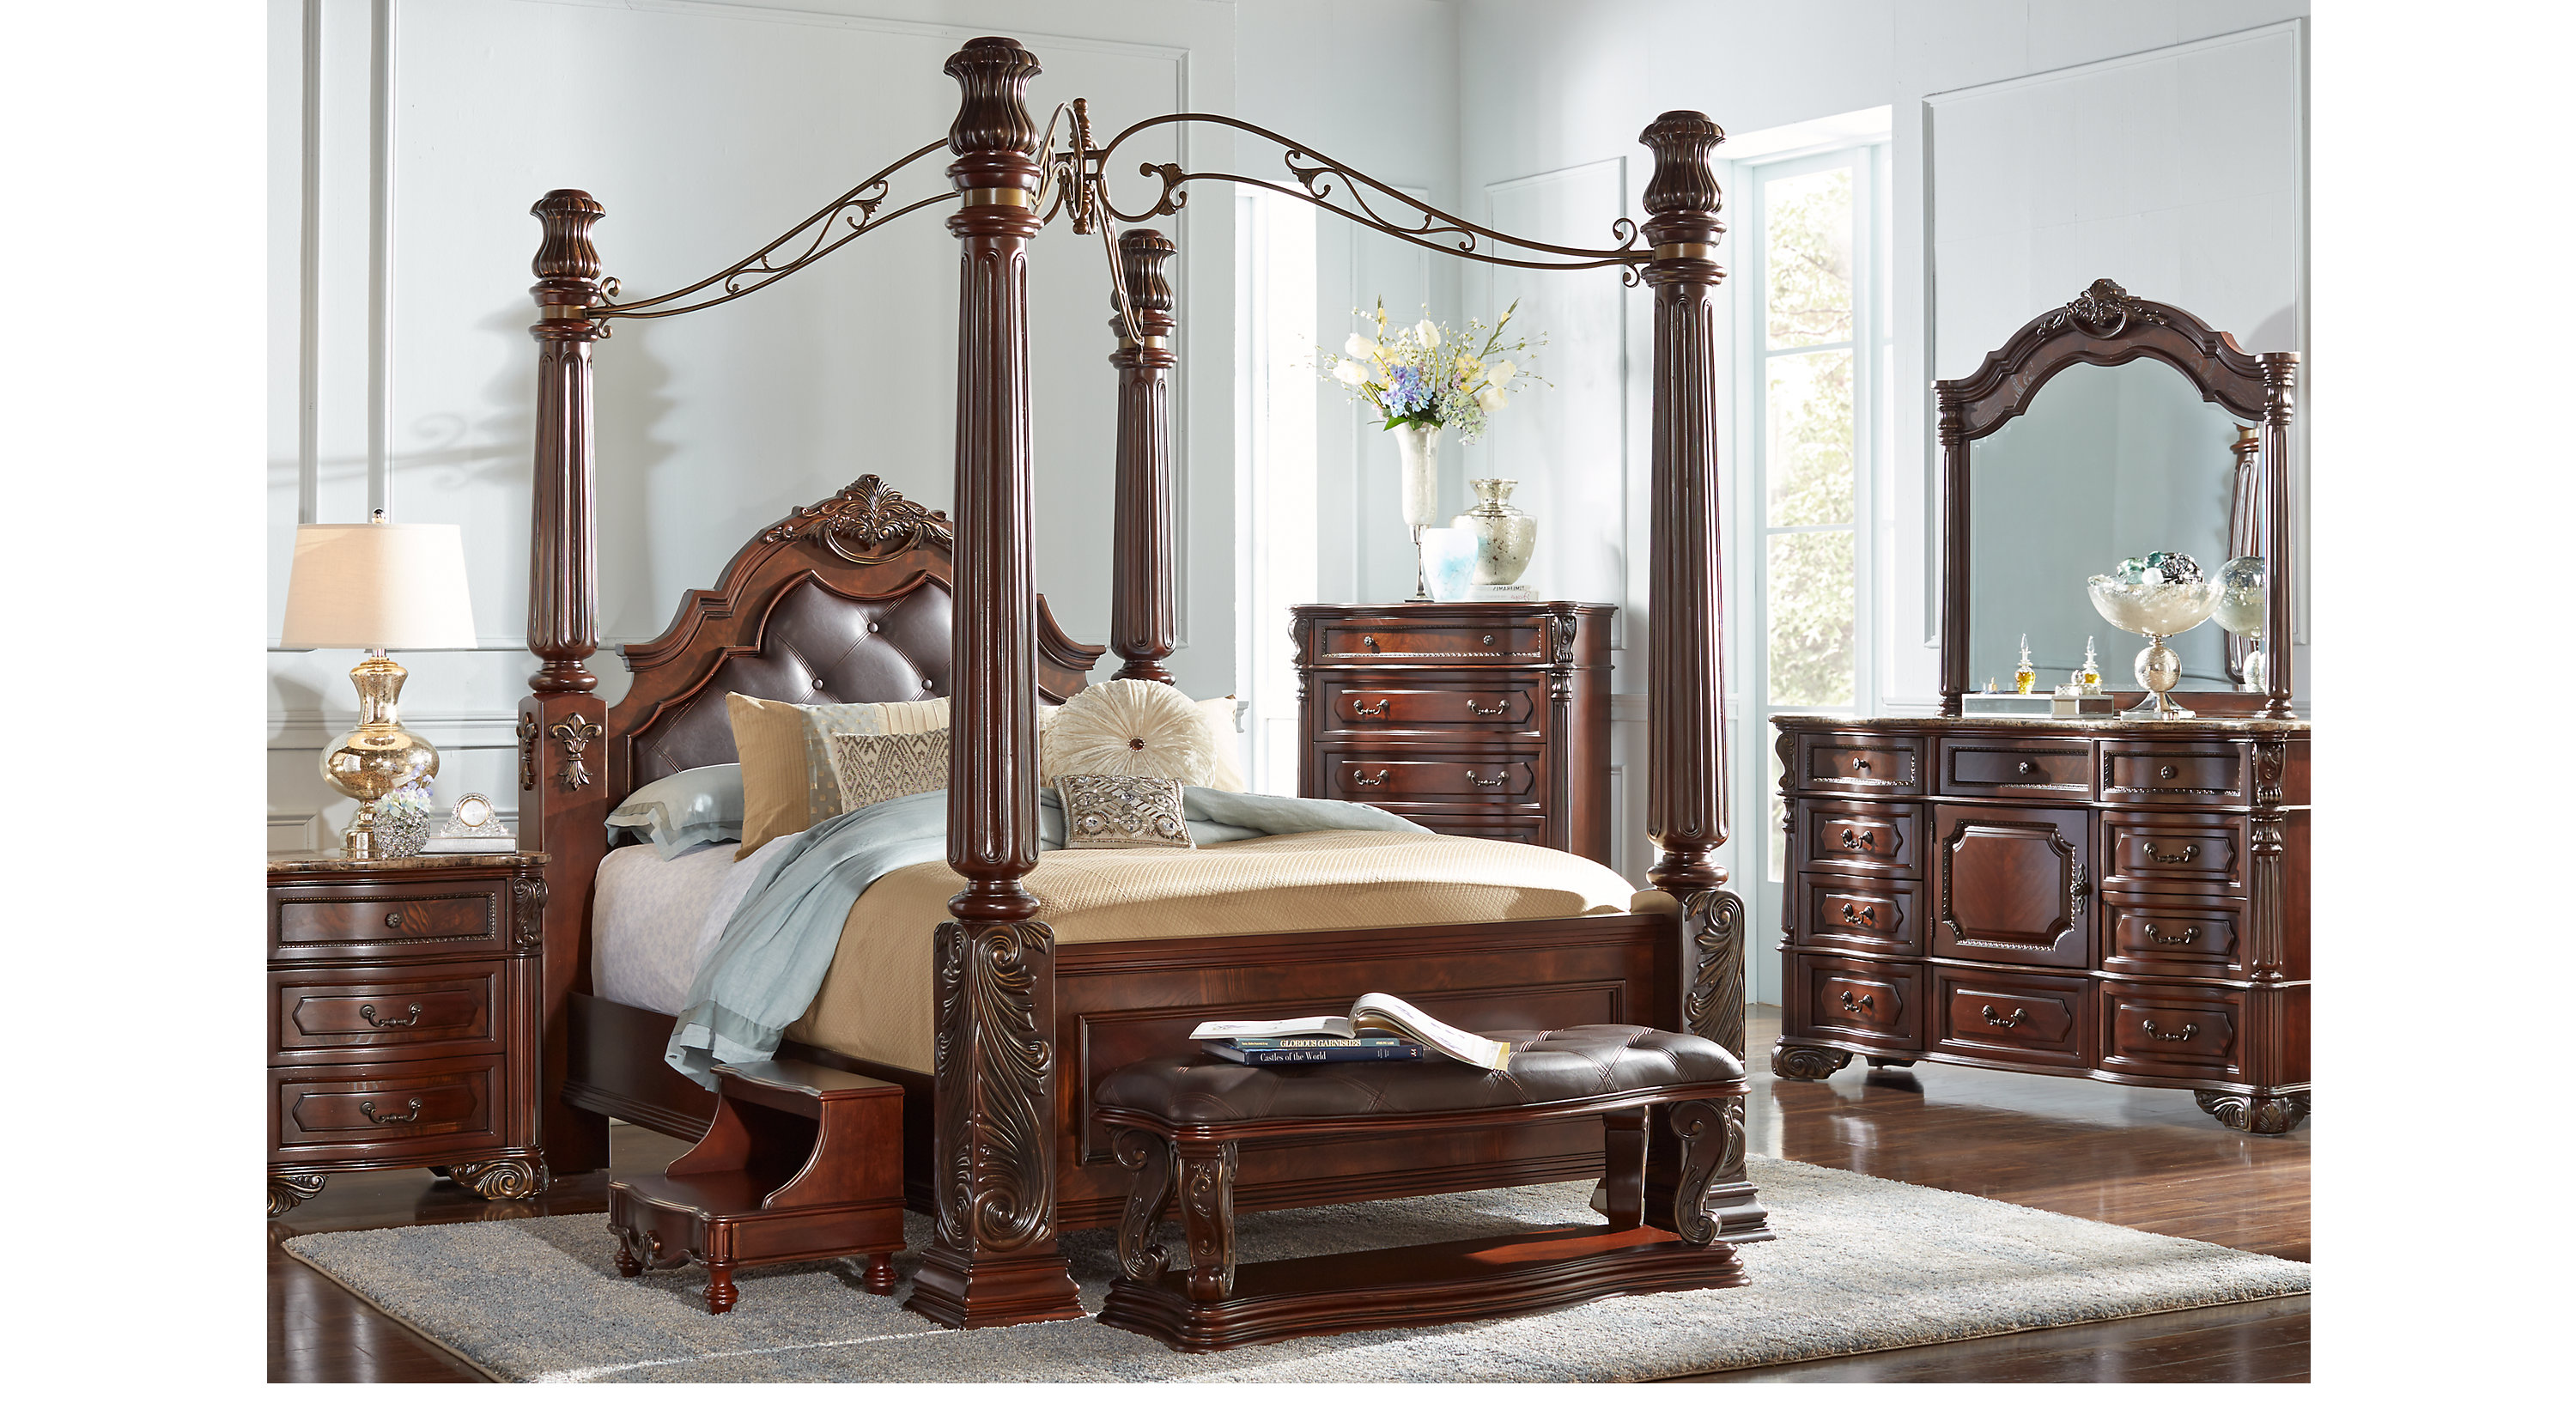 South&ton Walnut (dark brown) 6 Pc King Canopy Bedroom - Traditional  sc 1 st  Furniture.com & Walnut (dark brown) 6 Pc King Canopy Bedroom - Traditional